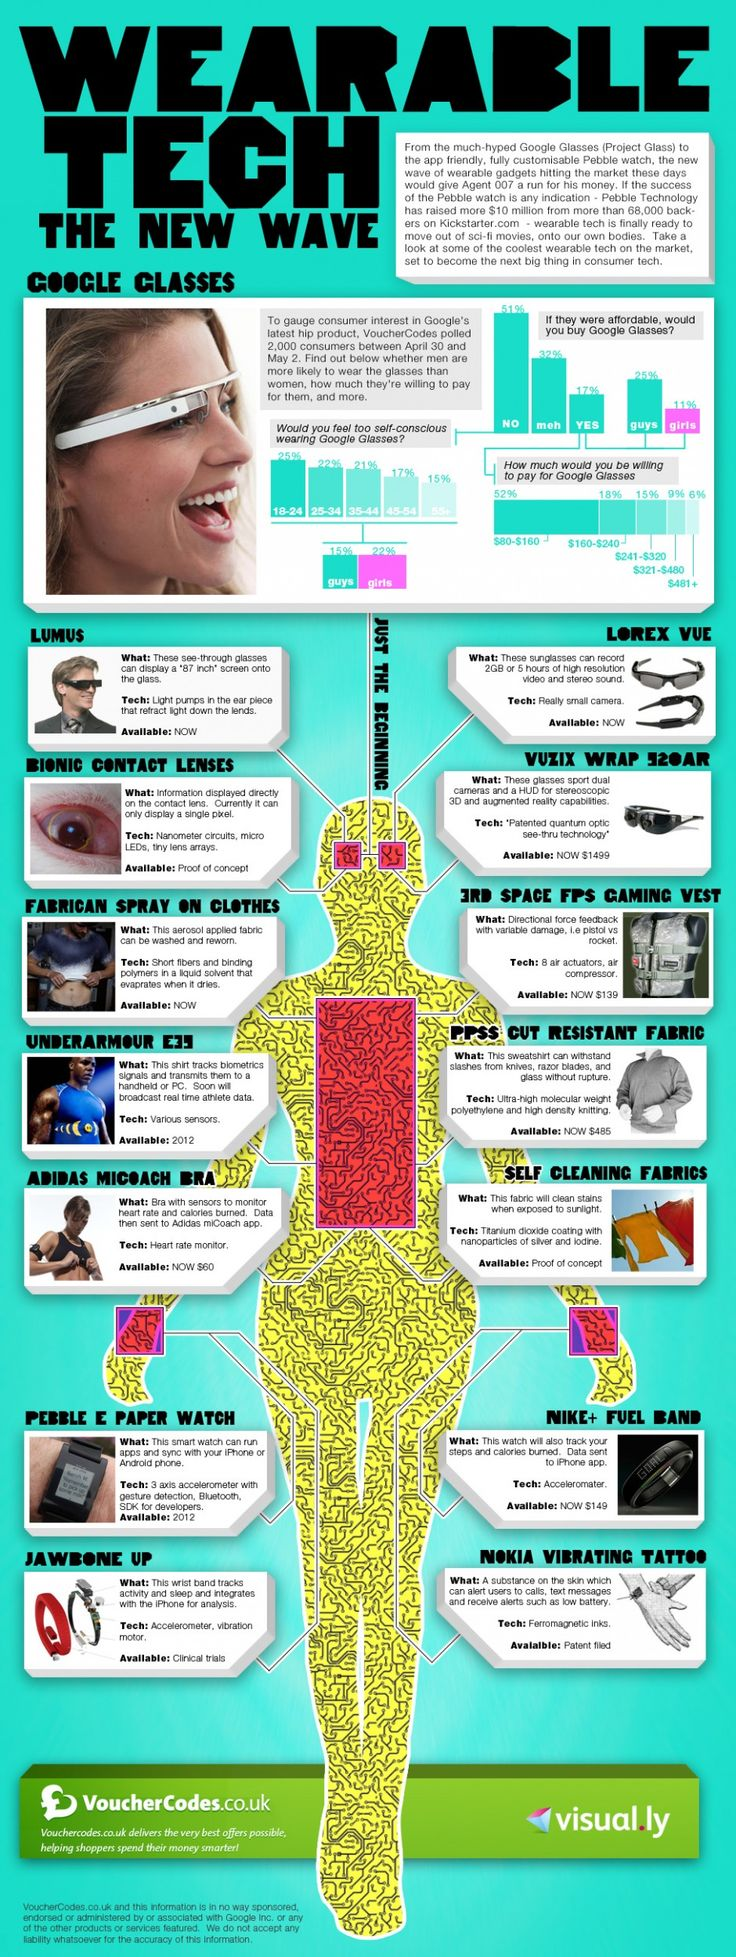 The New Wave Of Wearable Tech –Infographic